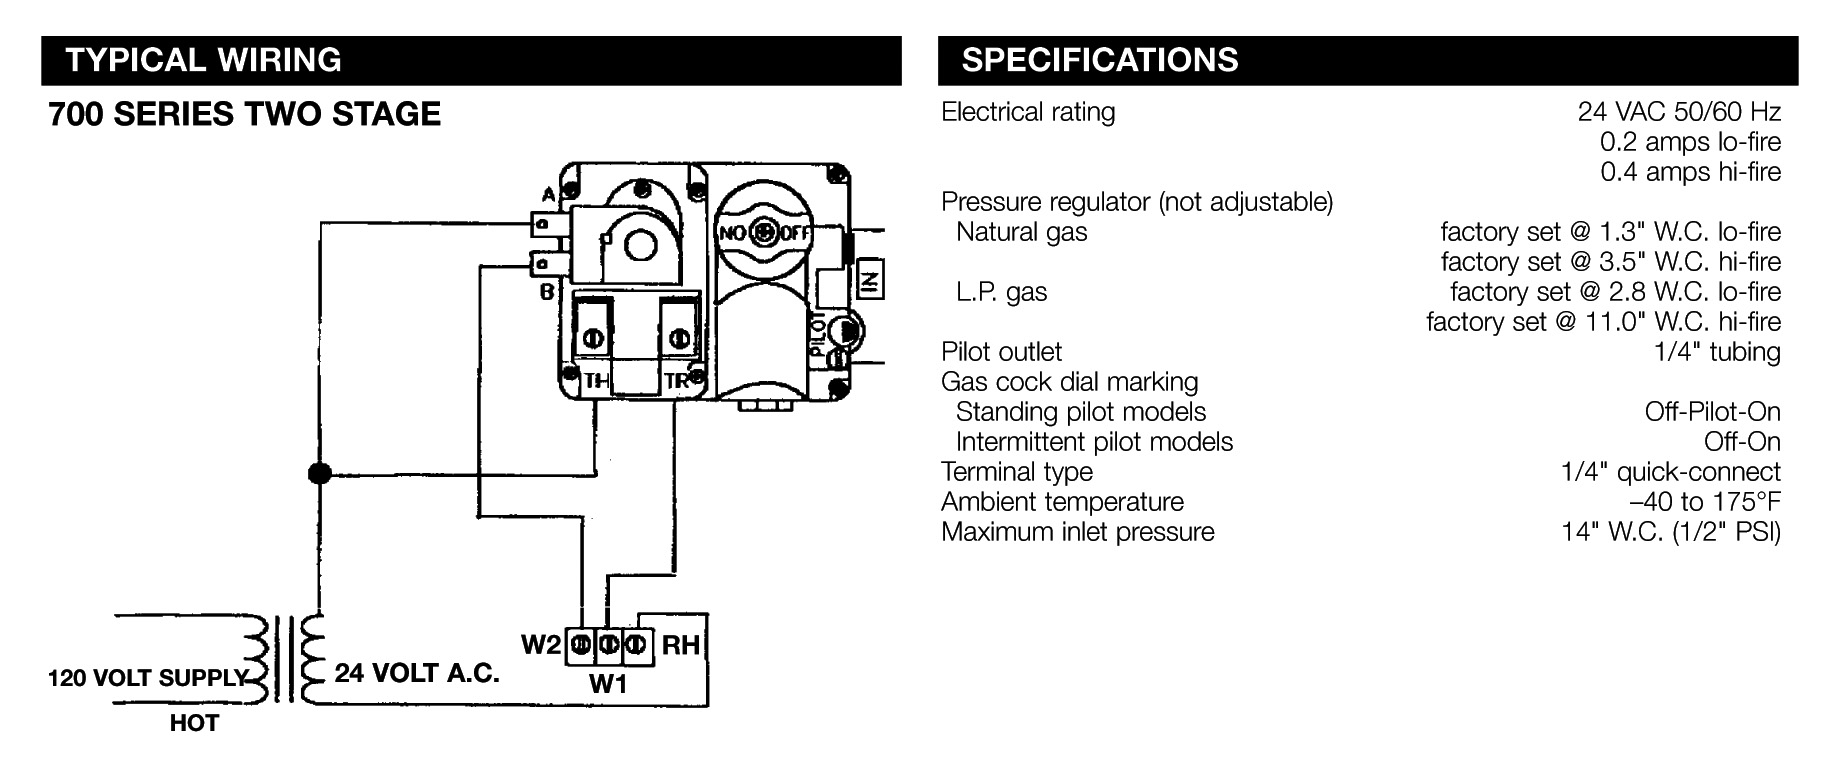 hight resolution of 700 series 2 stage wiring and specifications